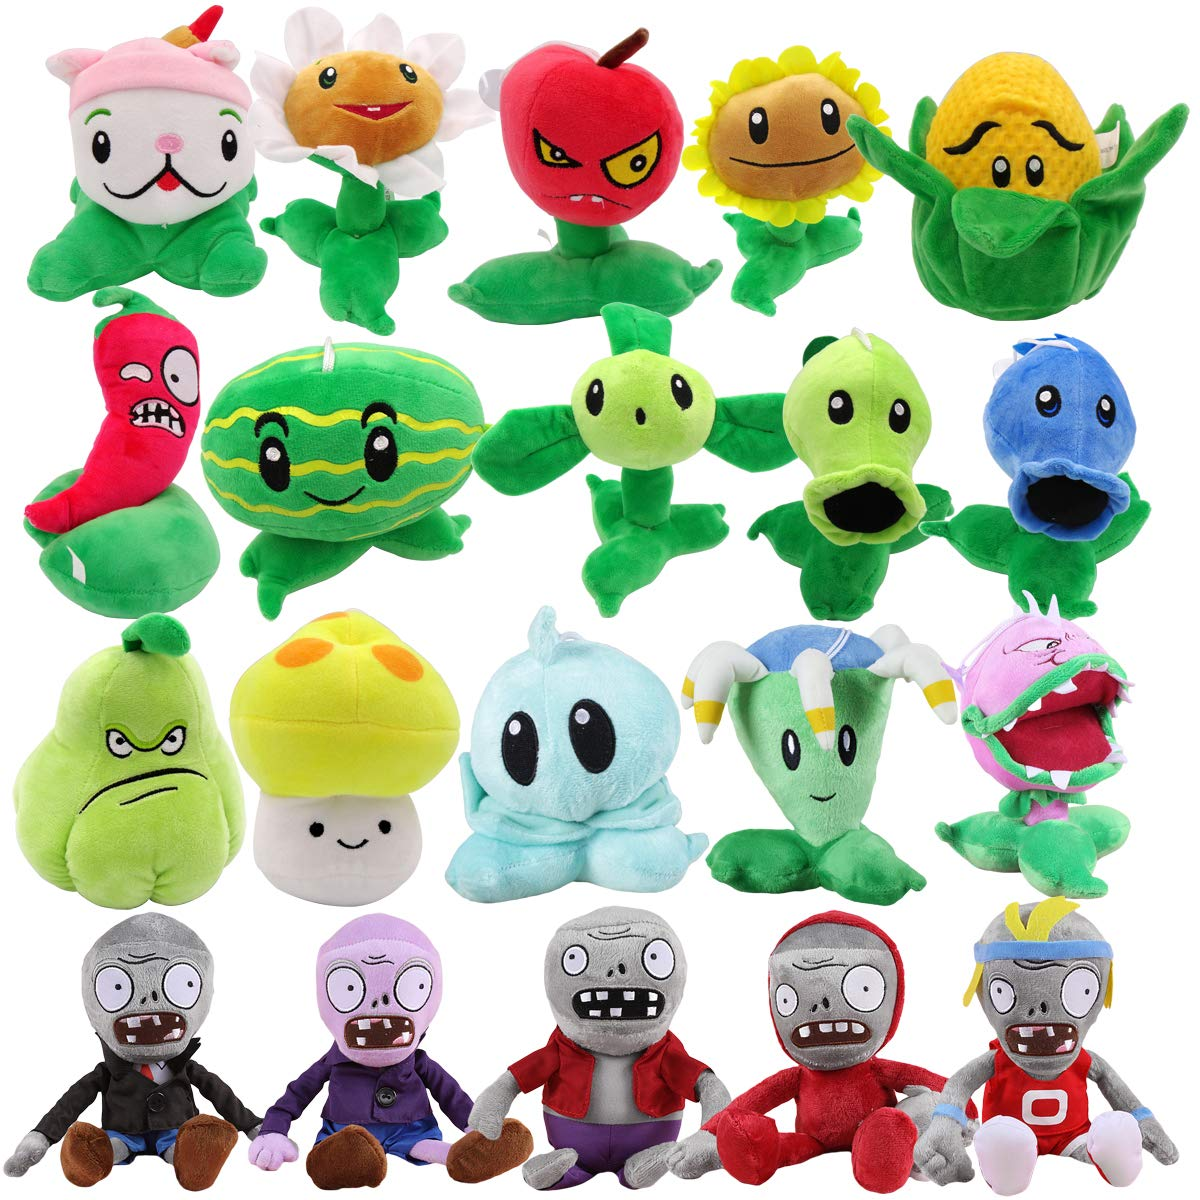 TavasHome Plants vs Zombies Stuffed Plush Toys (Set of 20 ),Games PVZ Soft Toys Doll for Kids Gifts Party Toy Baby Plush Doll by TavasHome